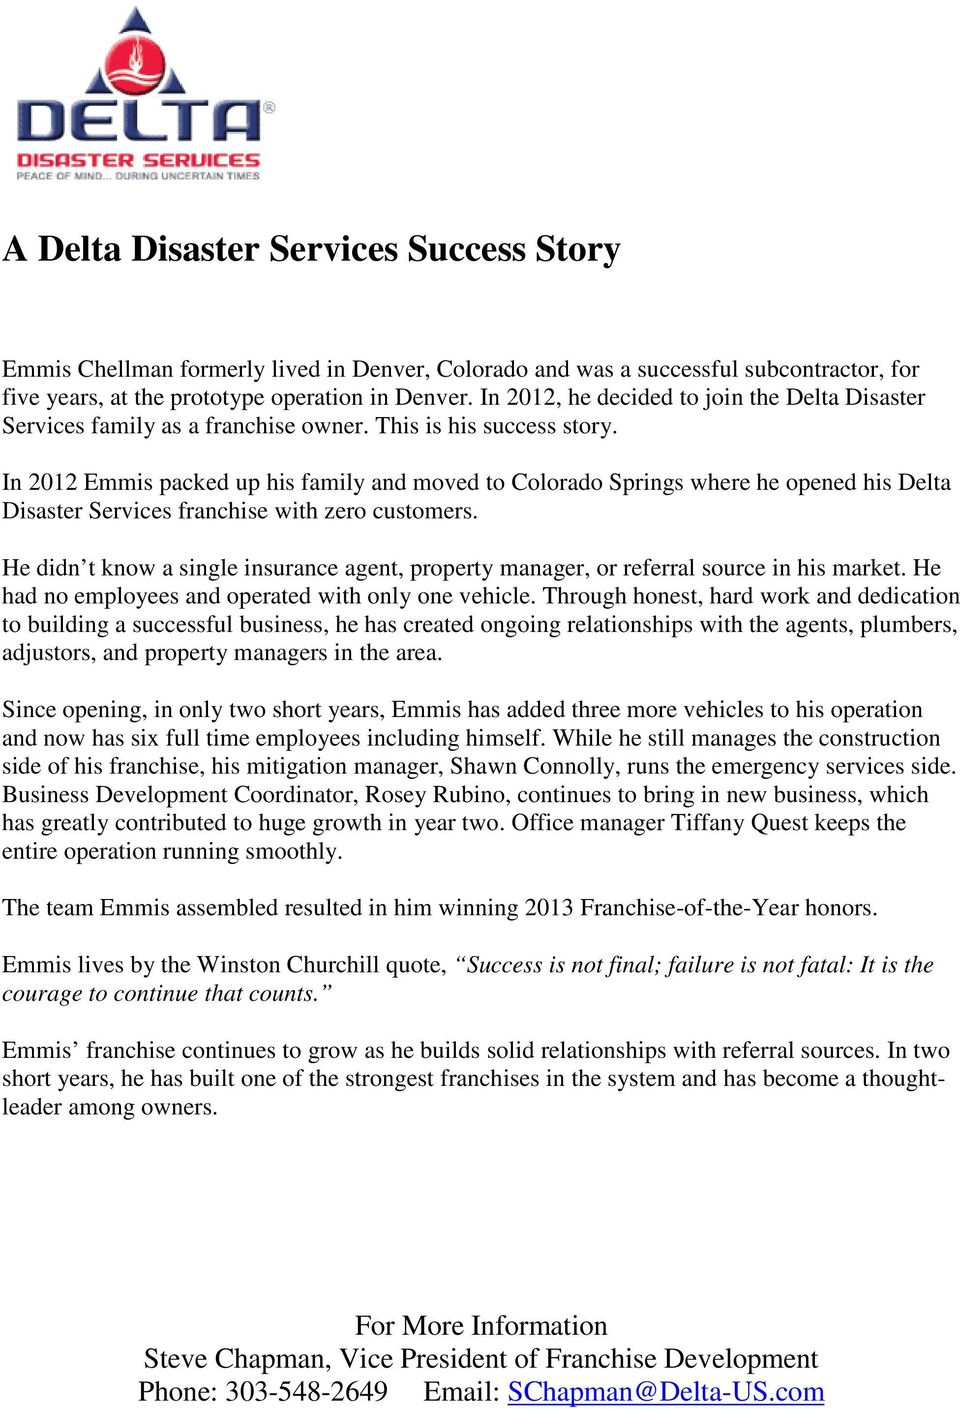 In 2012 Emmis packed up his family and moved to Colorado Springs where he opened his Delta Disaster Services franchise with zero customers.